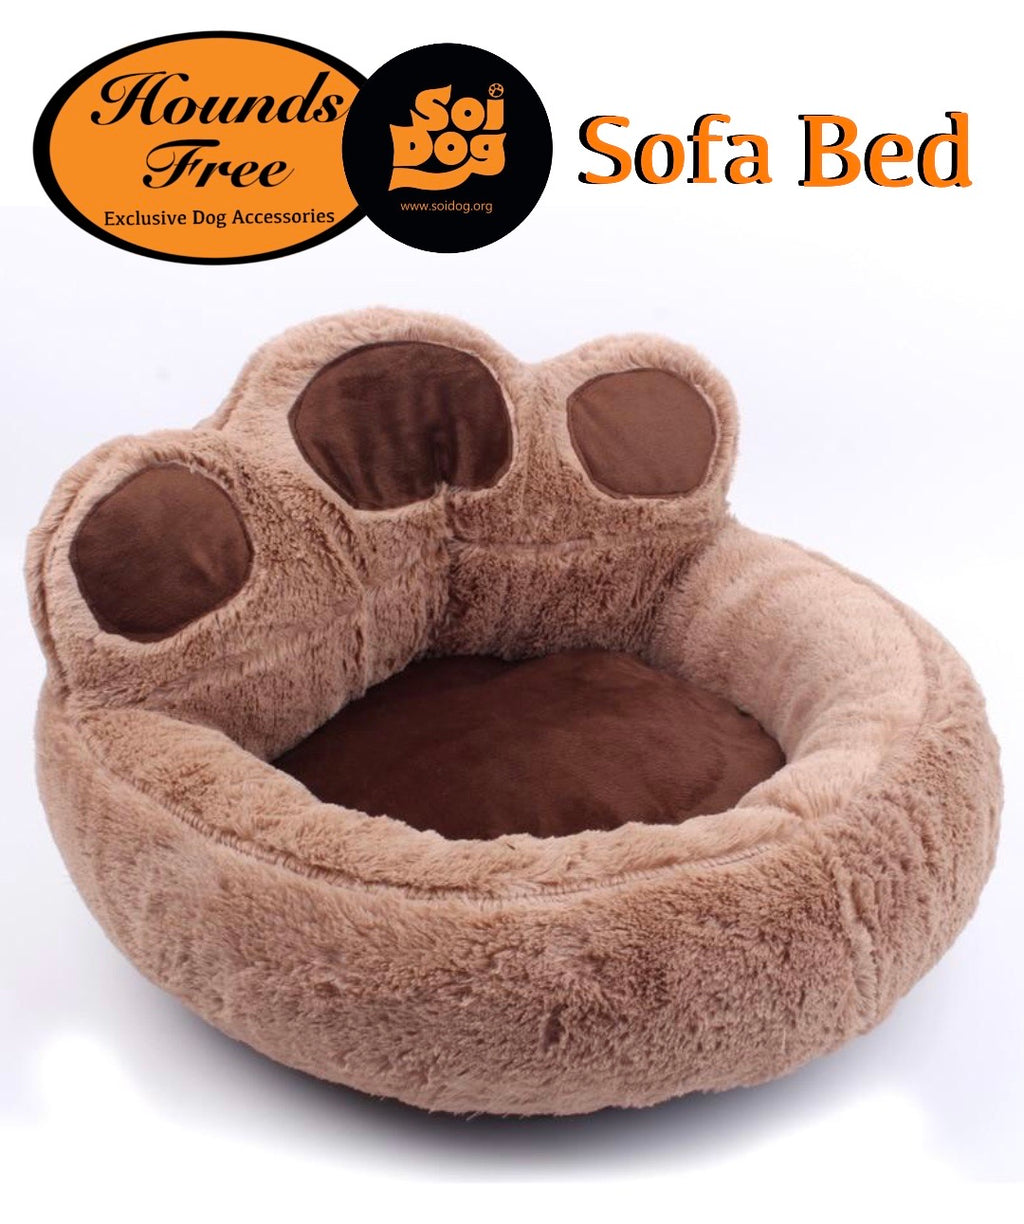 Hounds Free Sofa Bed